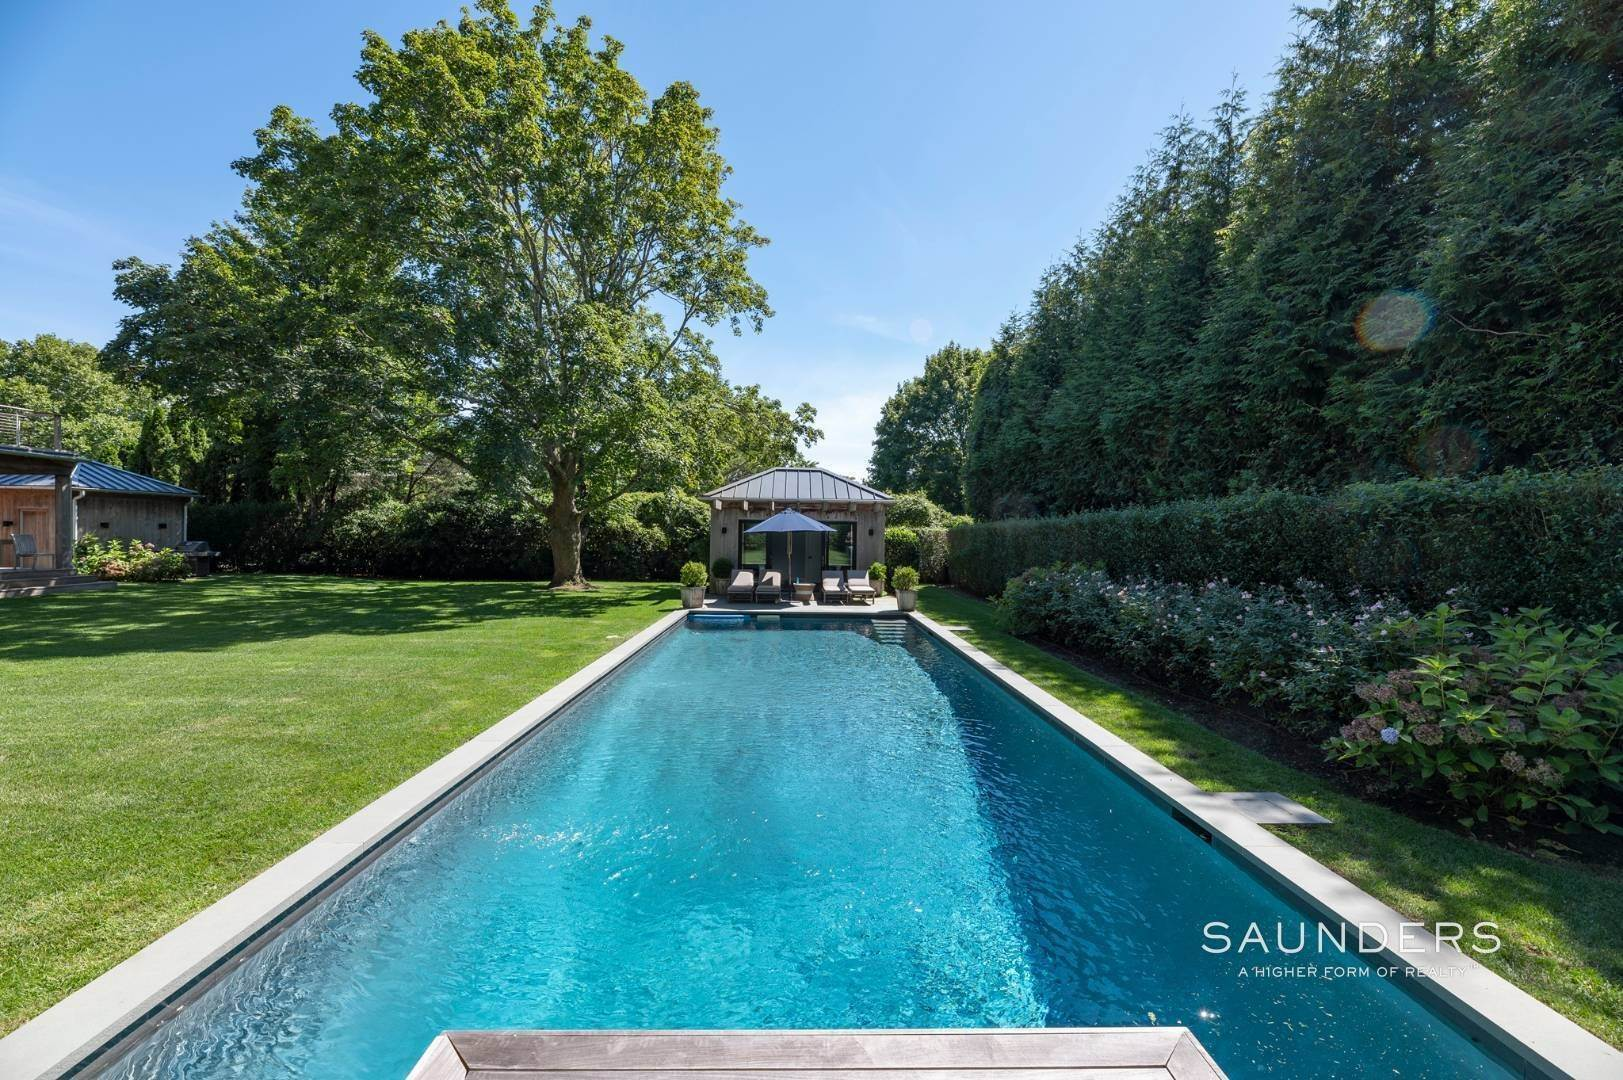 25. Single Family Homes for Sale at European Chic In Bridgehampton South 139 Hildreth Avenue - 20 Audubon Avenue, Bridgehampton, Southampton Town, NY 11937